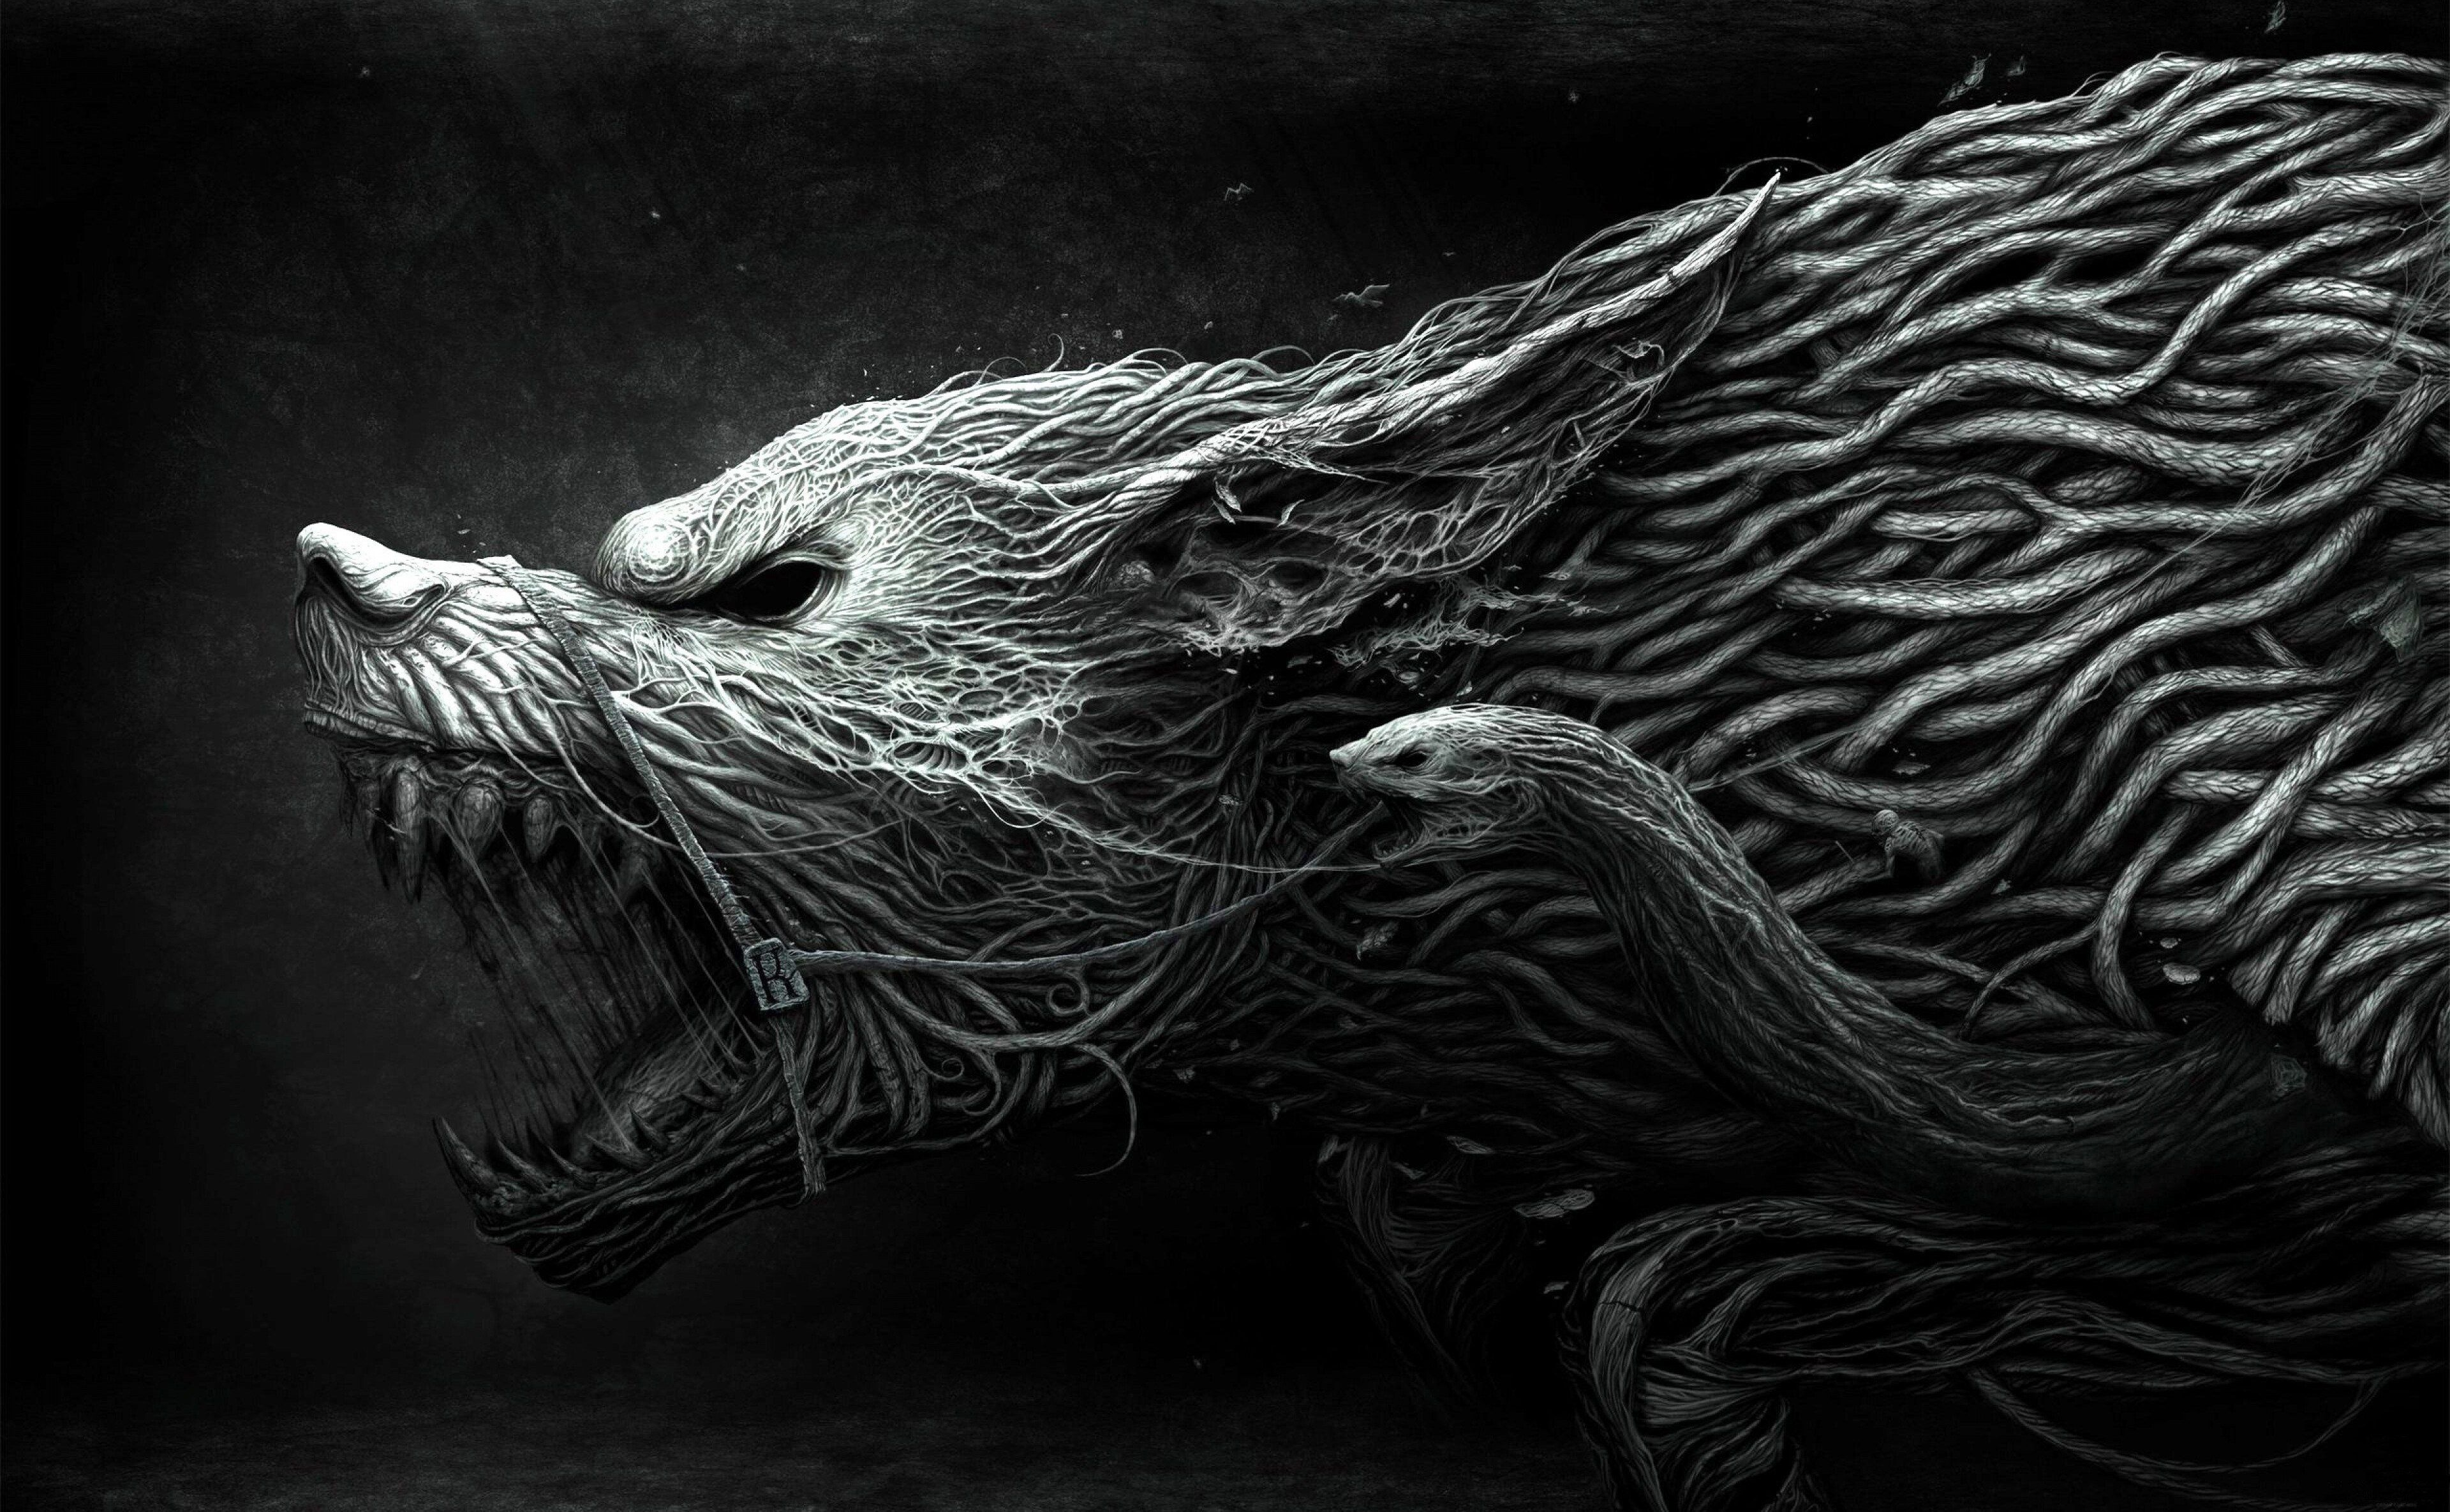 3840x2370 Wolf 4k Pc Wallpaper Wolf Wallpaper Animal Wallpaper Art Wallpaper